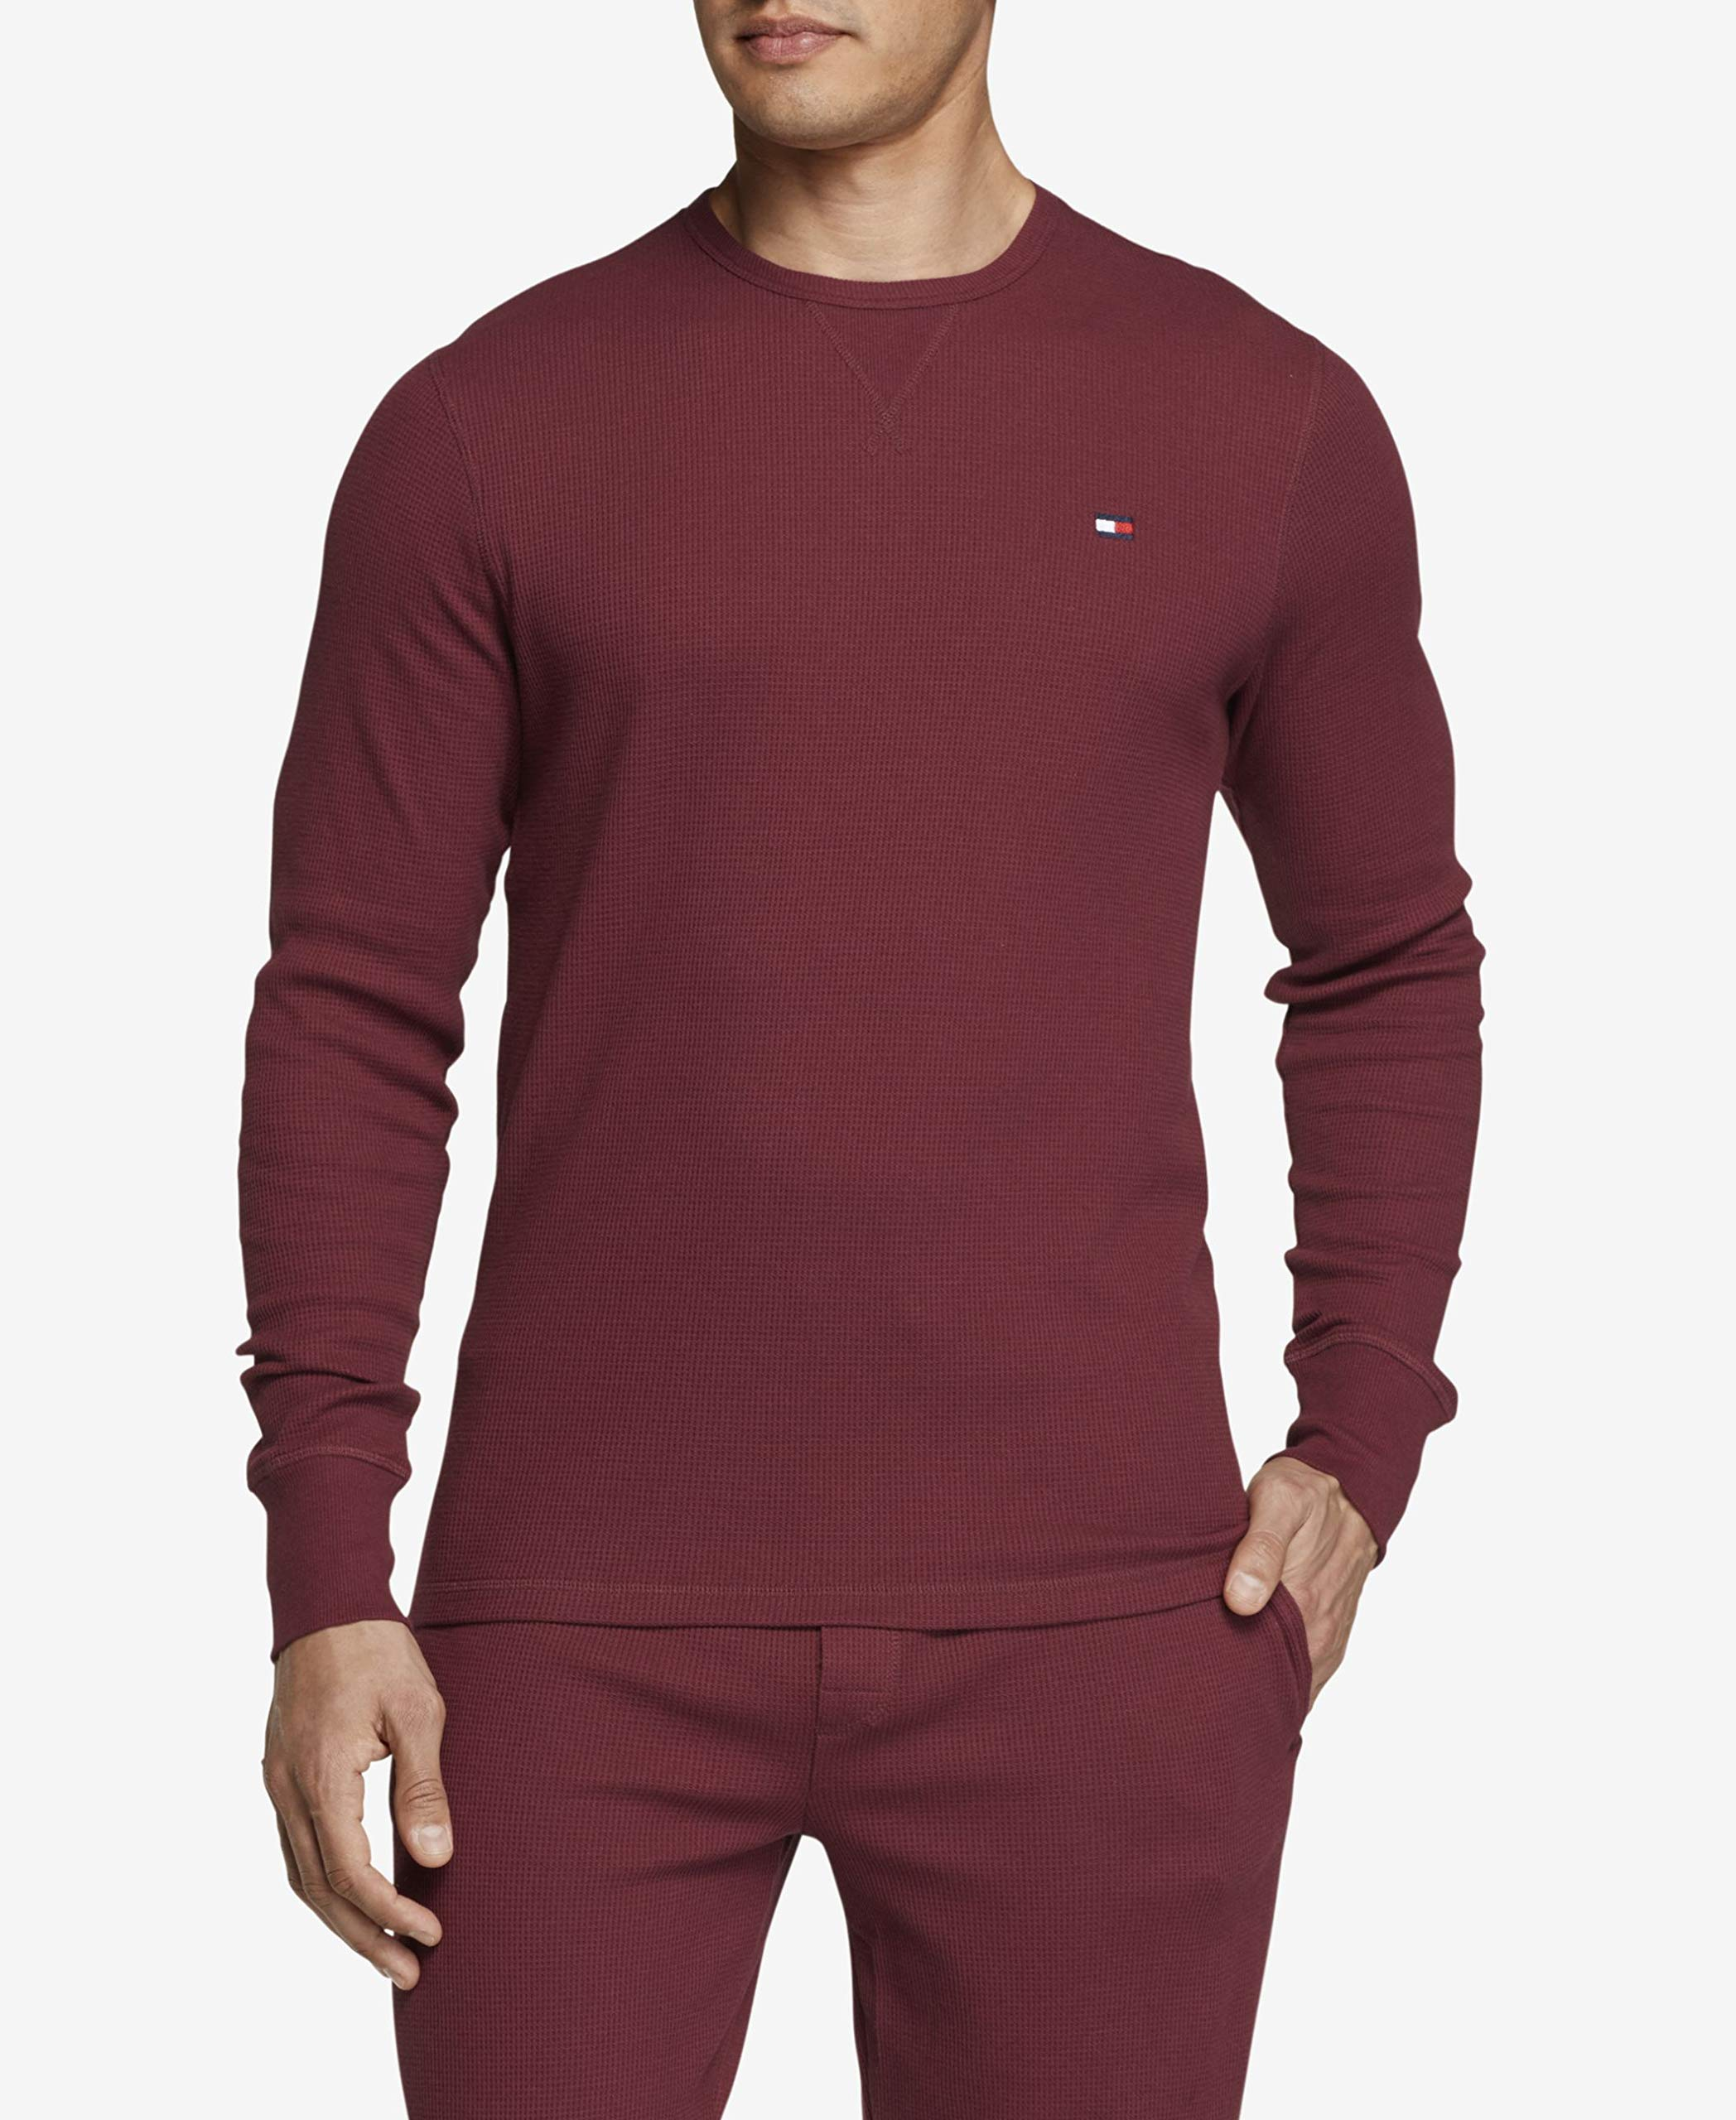 Tommy Hilfiger Men's Thermal Long Sleeve Crew Neck Shirt, Cordovan, X-Large by Tommy Hilfiger